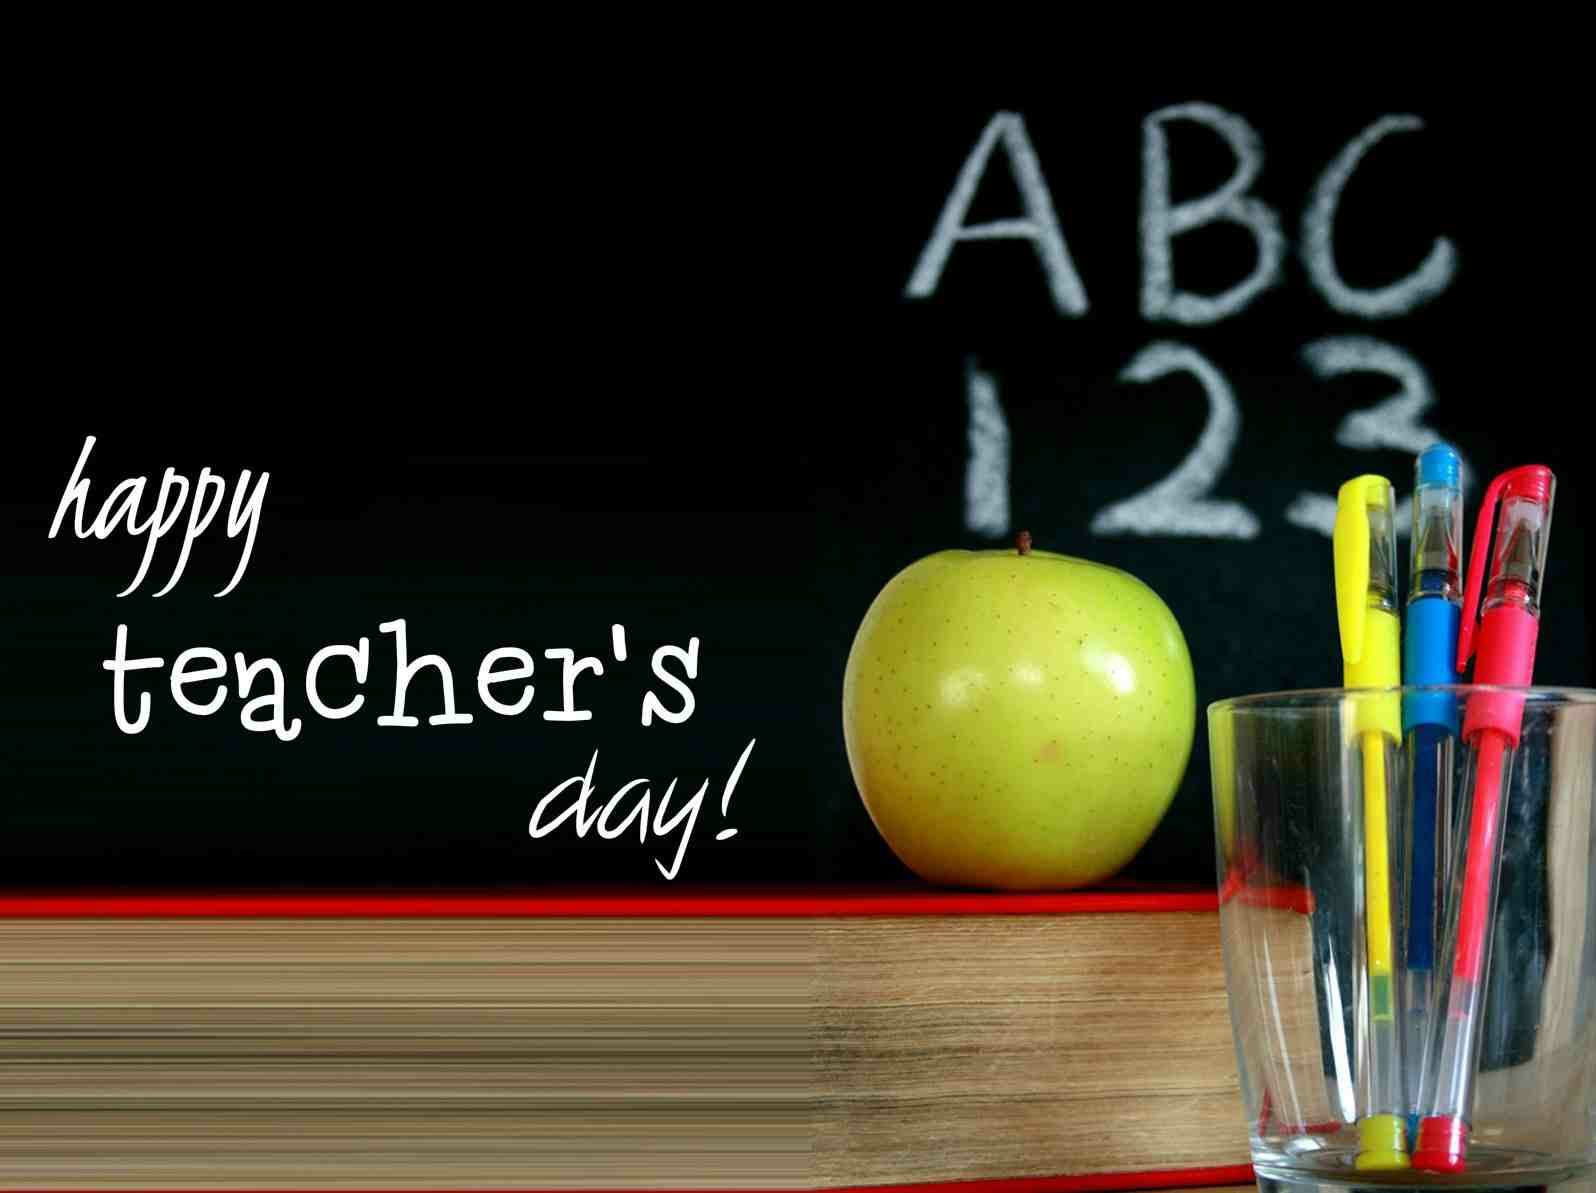 Happy world teachers day hd wallpaper altavistaventures Image collections